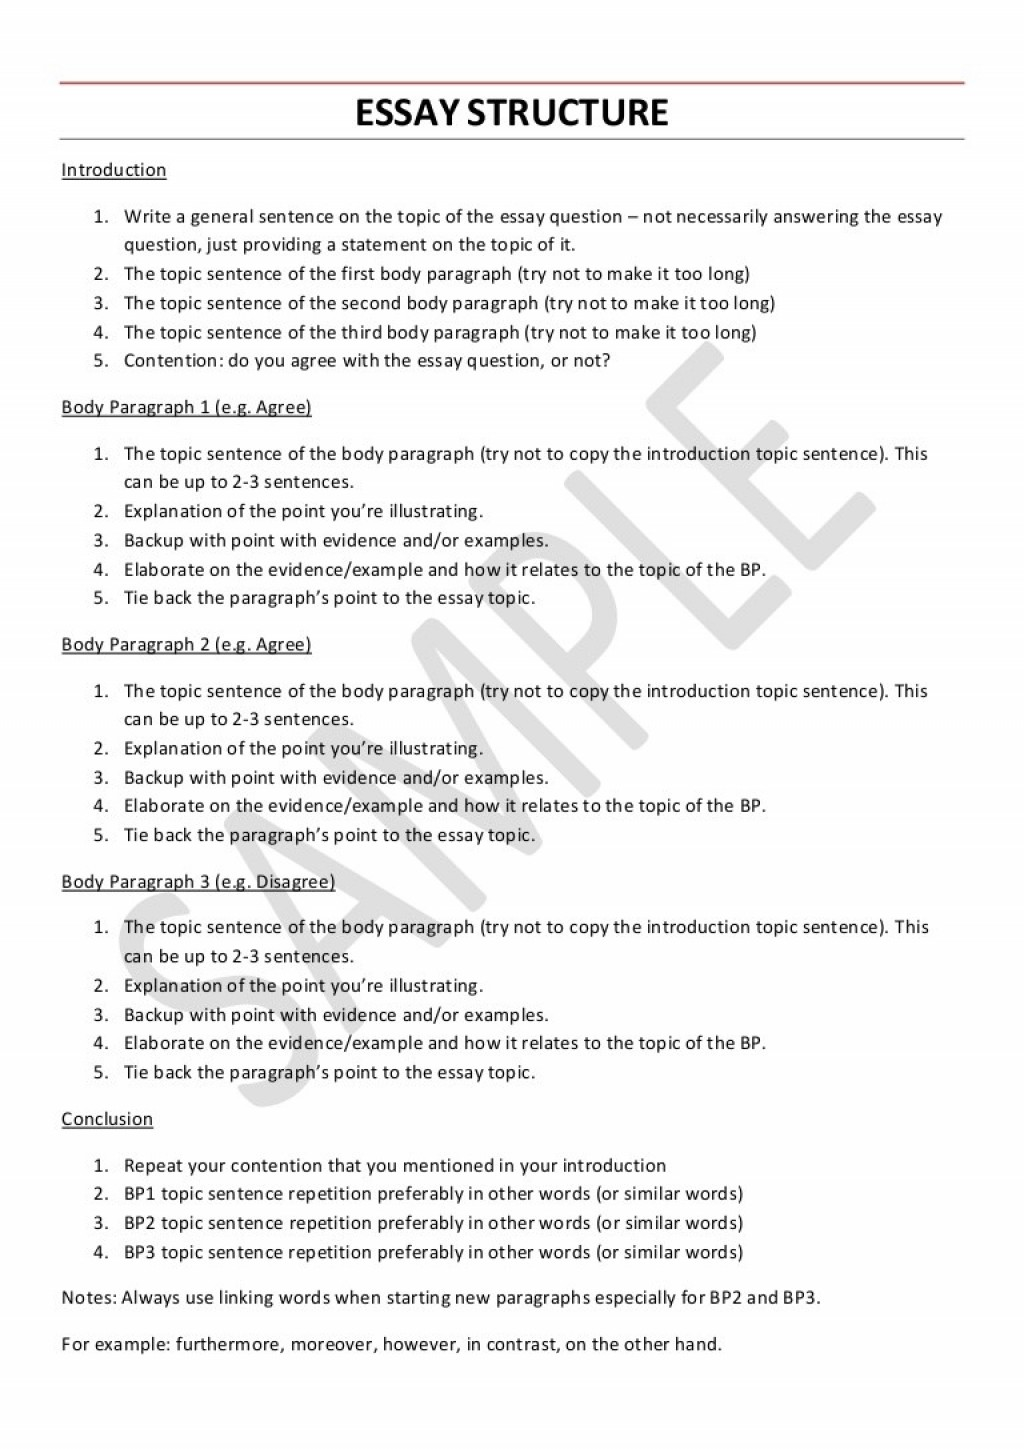 018 College English Research Paper Example Essaystructure Phpapp02 Thumbnail Unusual Large